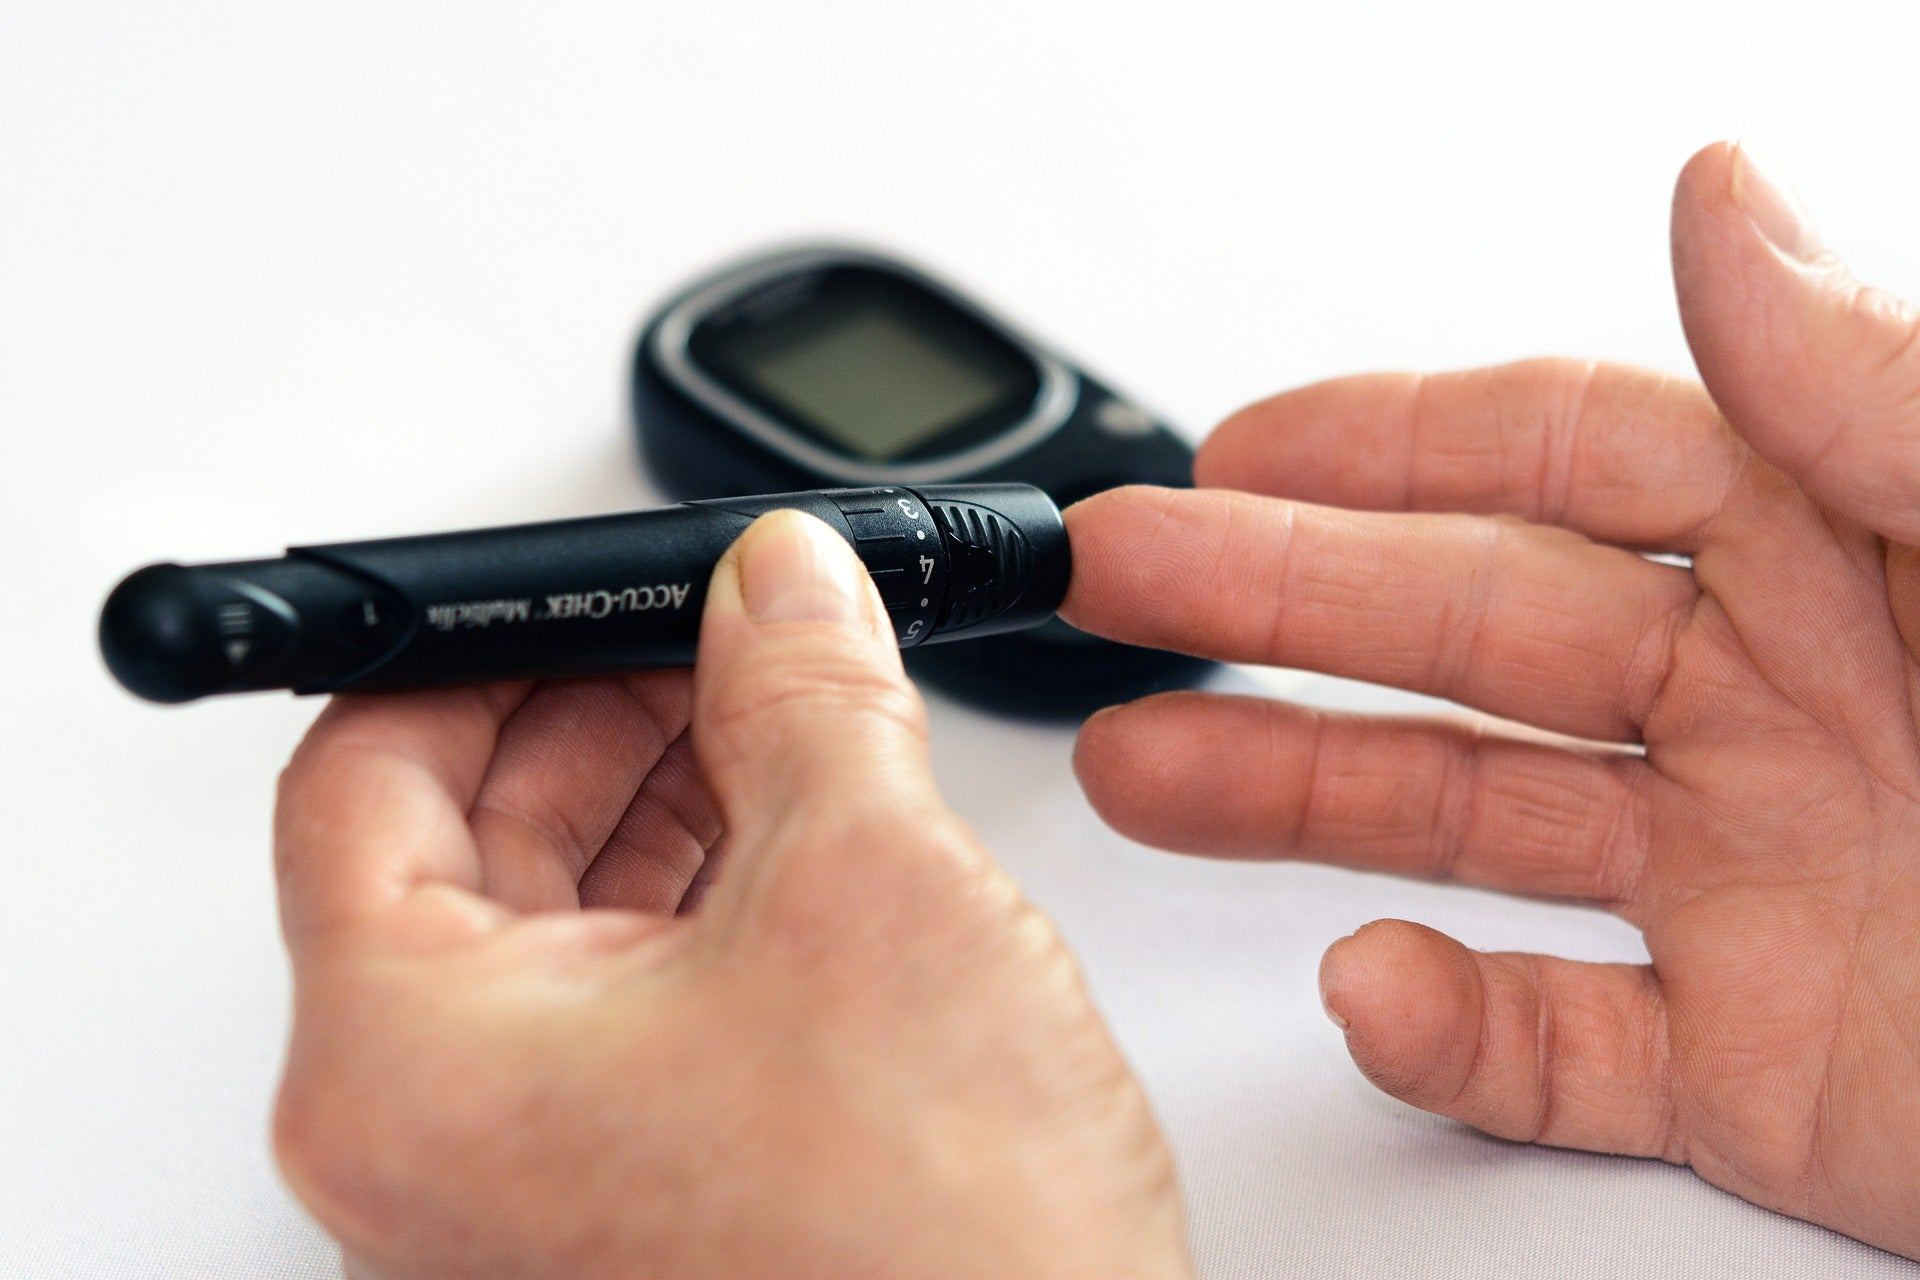 person using diabetes equipment to test their blood sugar